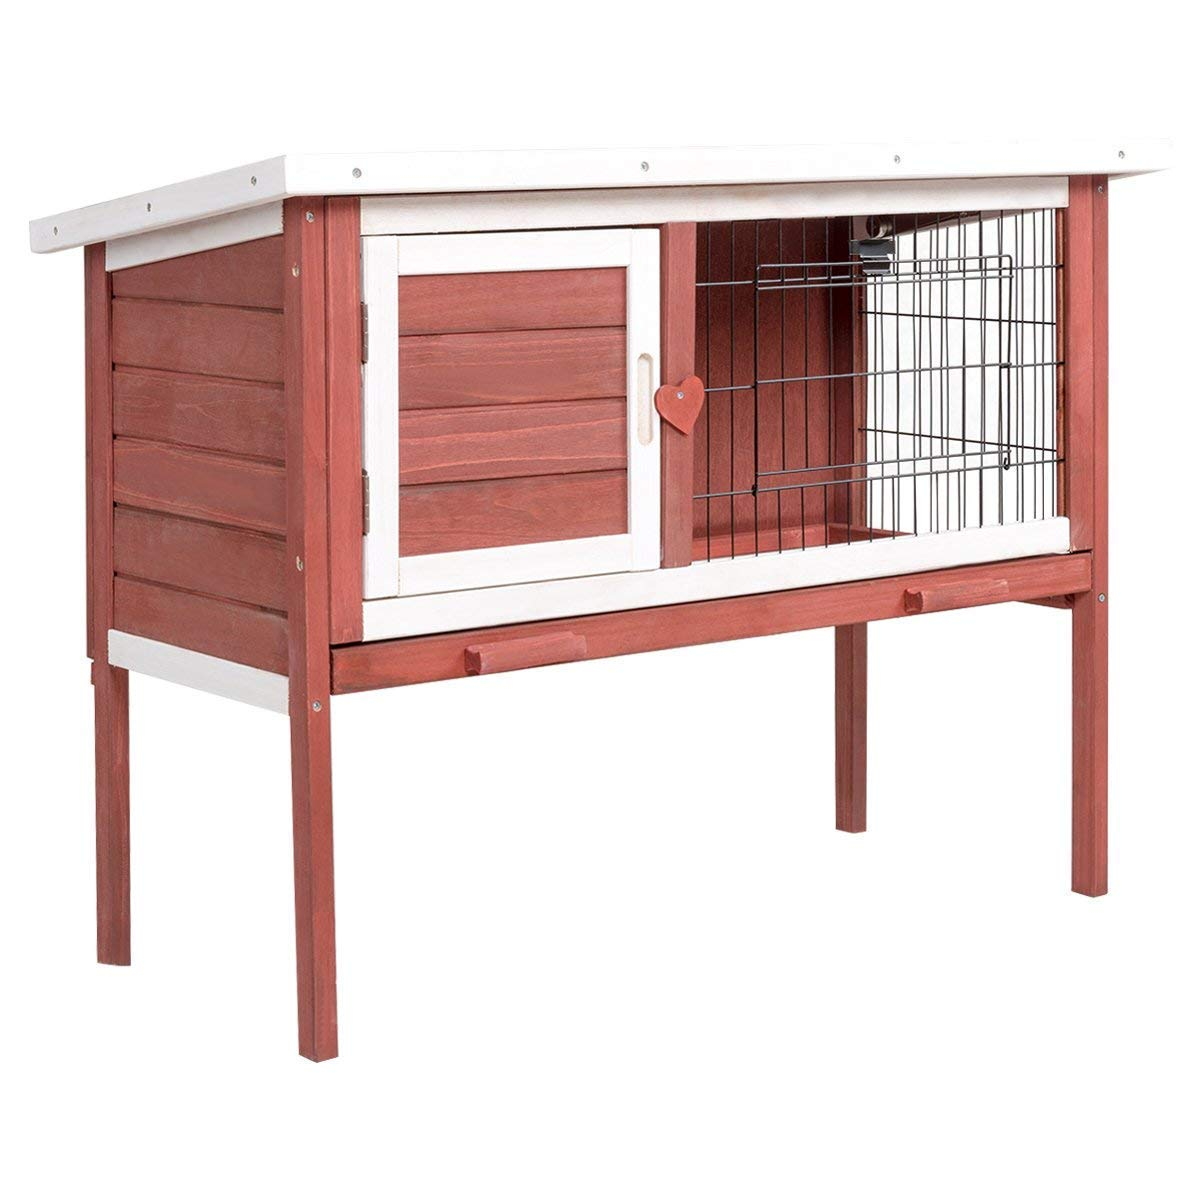 Tangkula Chicken Coop, Wooden Outdoor Garden Backyard Poultry Cage, Bunny Rabbit Small Animals Hen Cage with Tray, Rabbit Hutch (36''L x 18''W x 28''H)